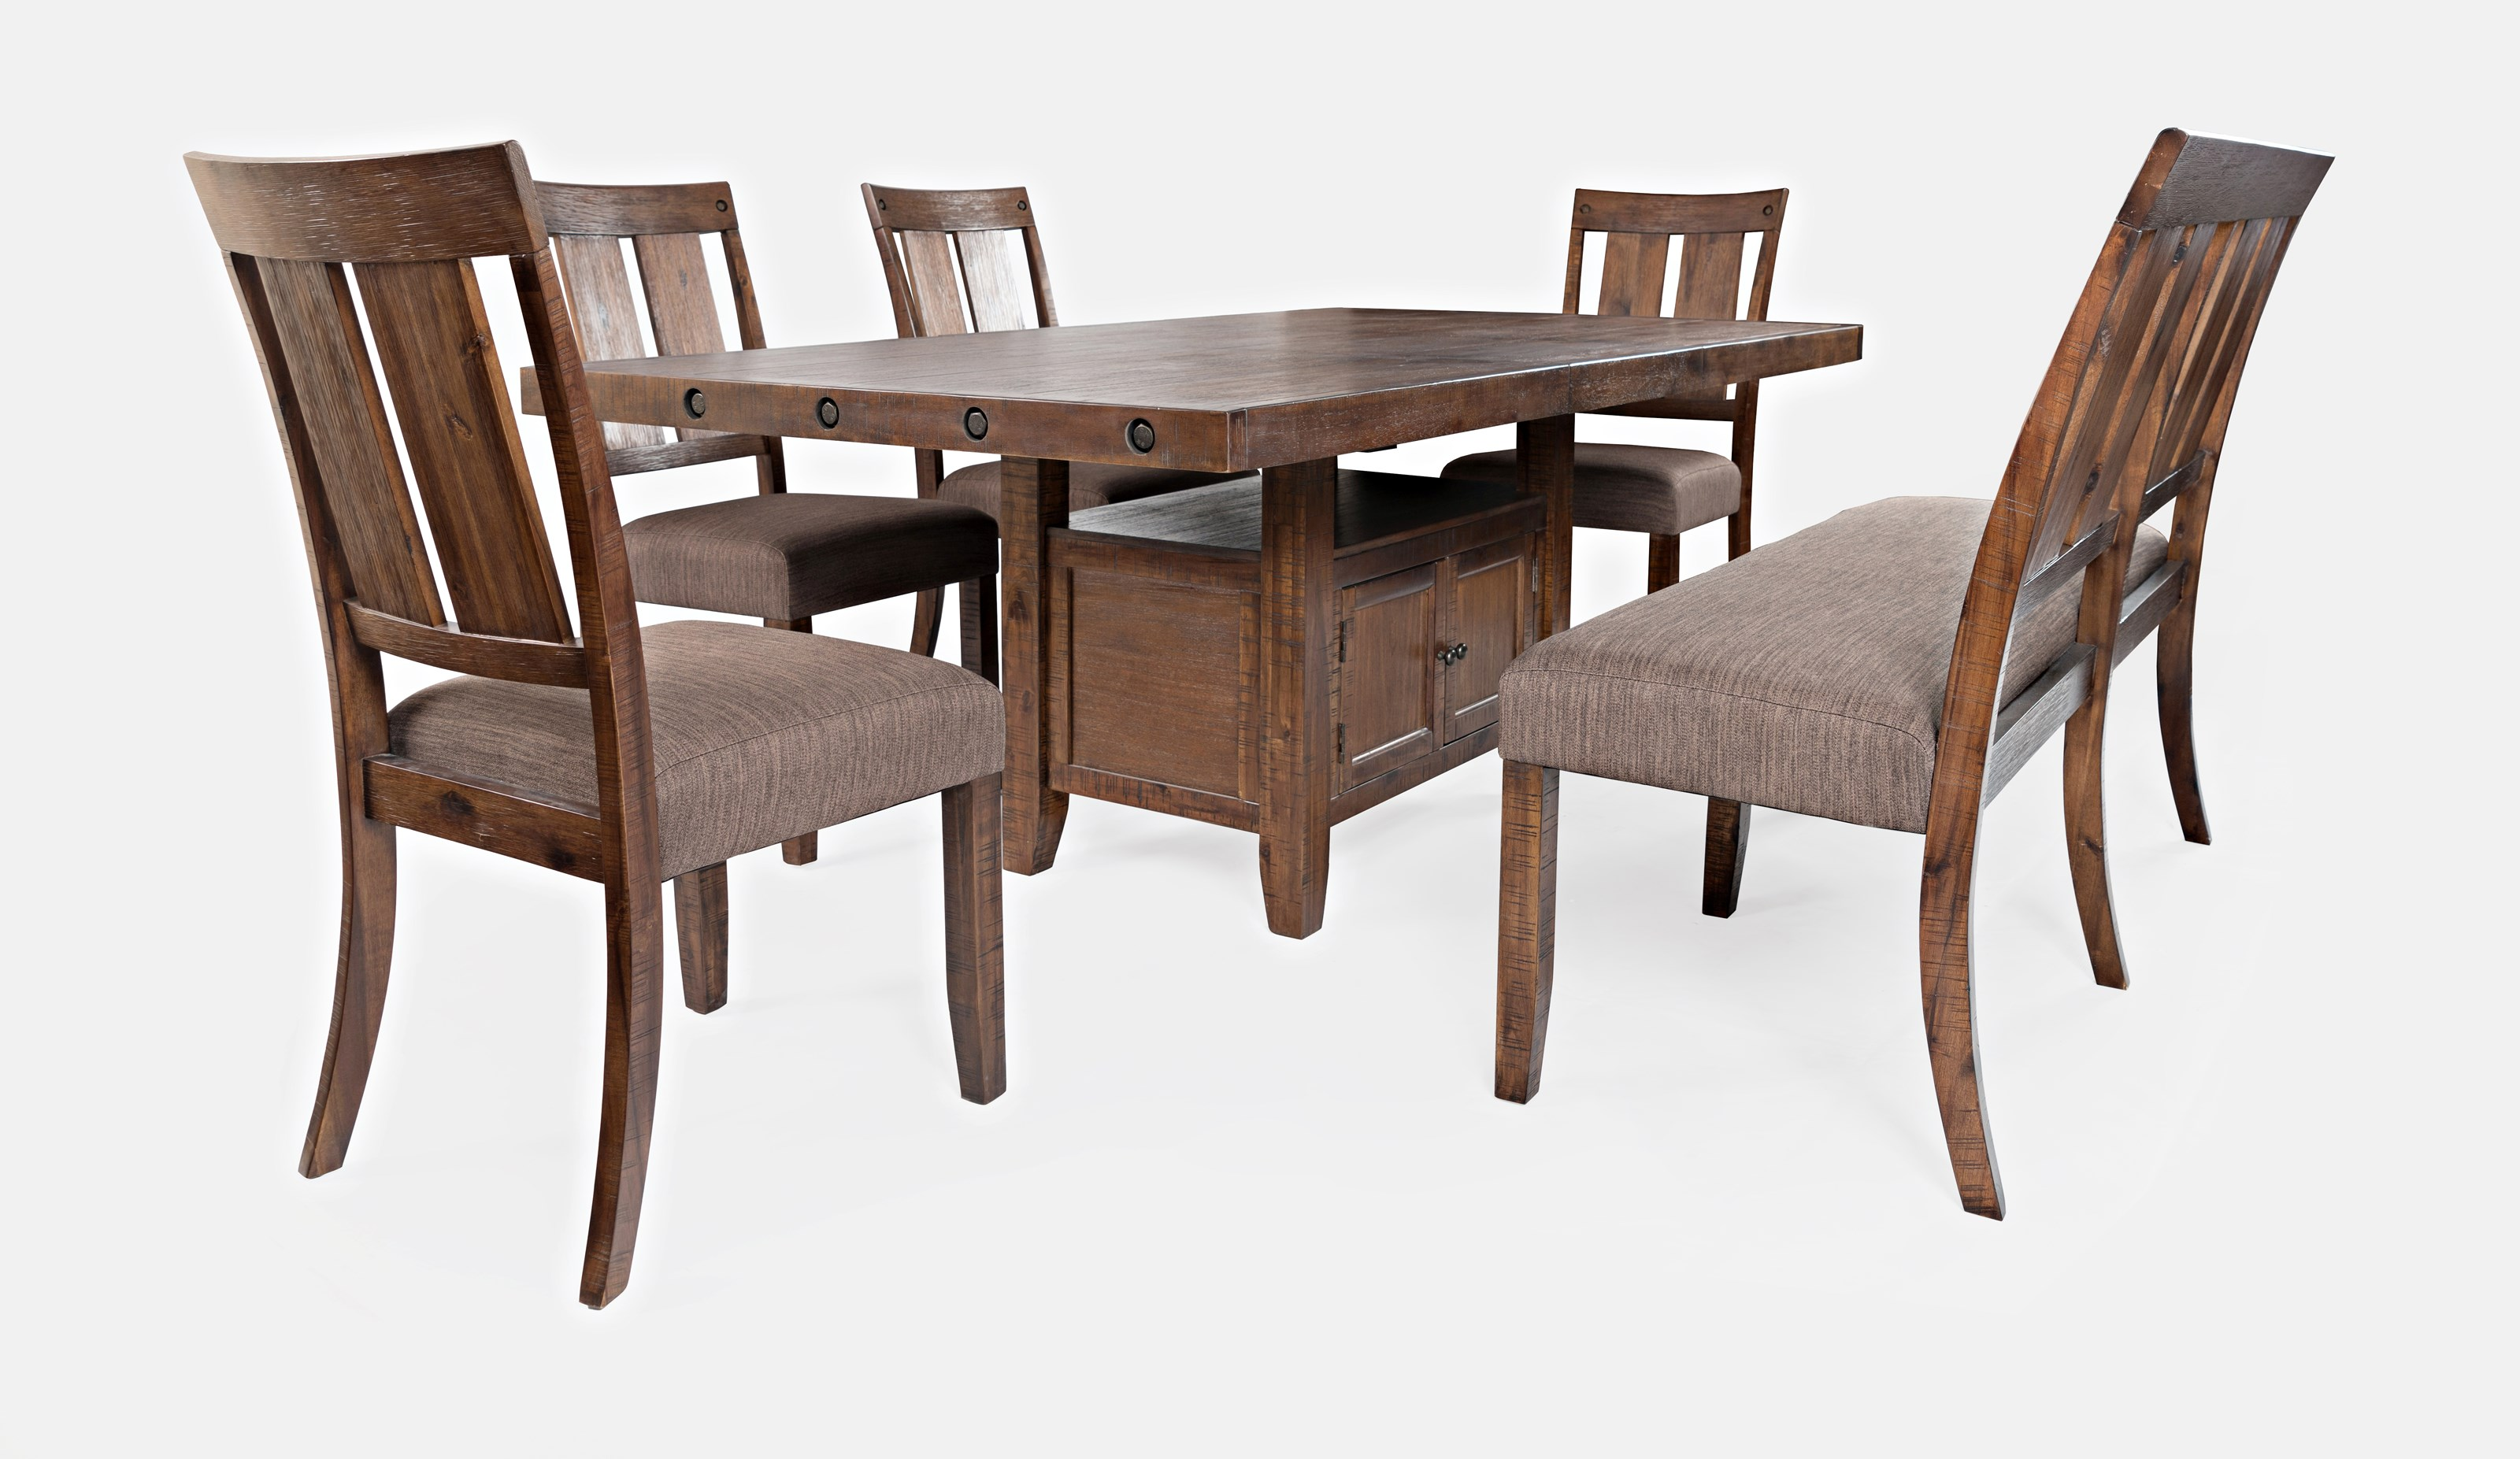 Mission Viejo Table and Chair Set with Bench by Jofran at Mueller Furniture